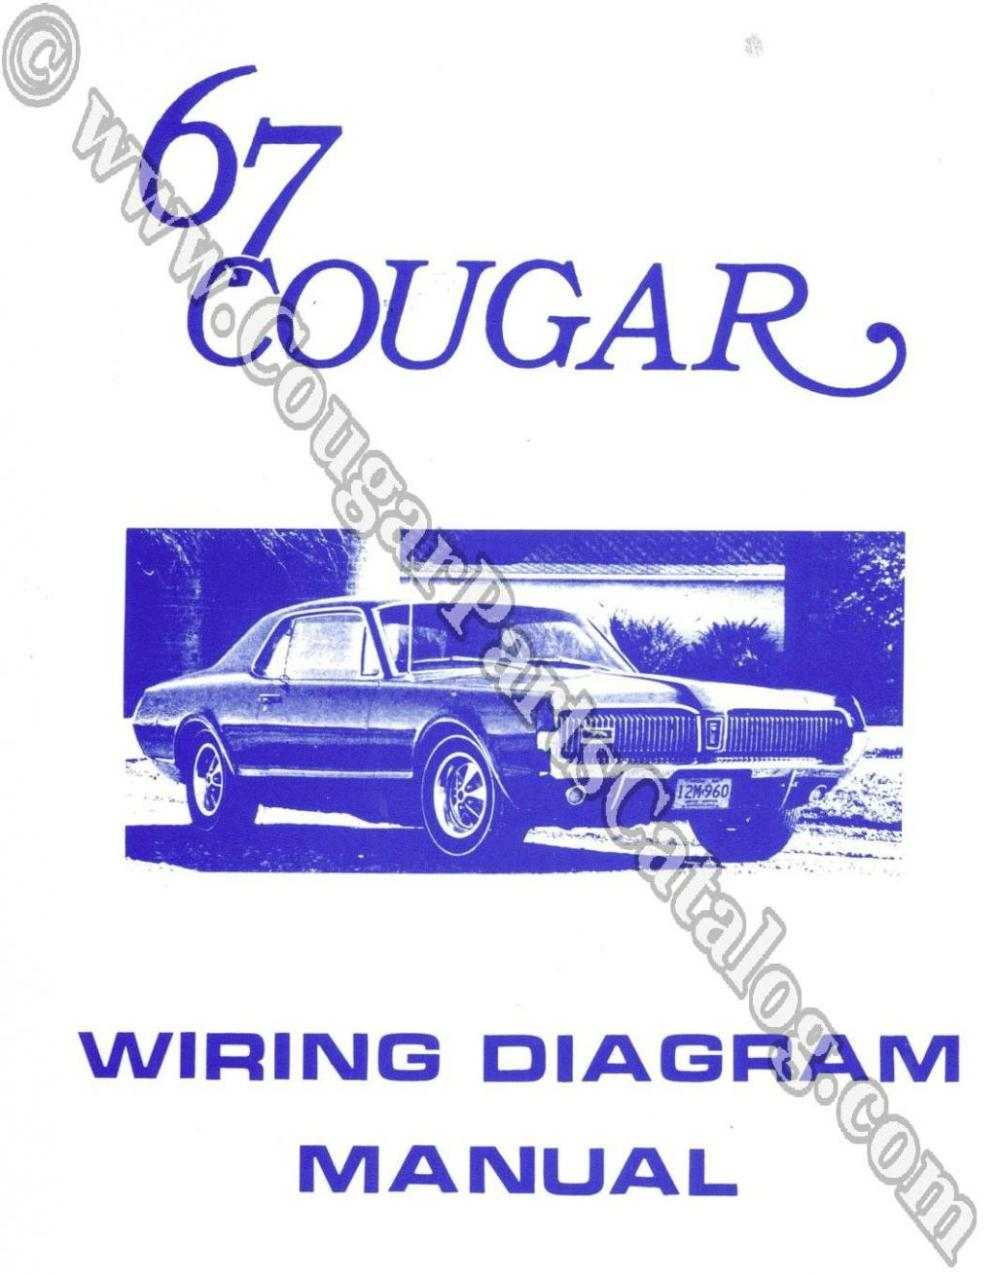 medium resolution of manual wiring diagram repro 1967 mercury cougar 1967 mercury rh secure cougarpartscatalog com